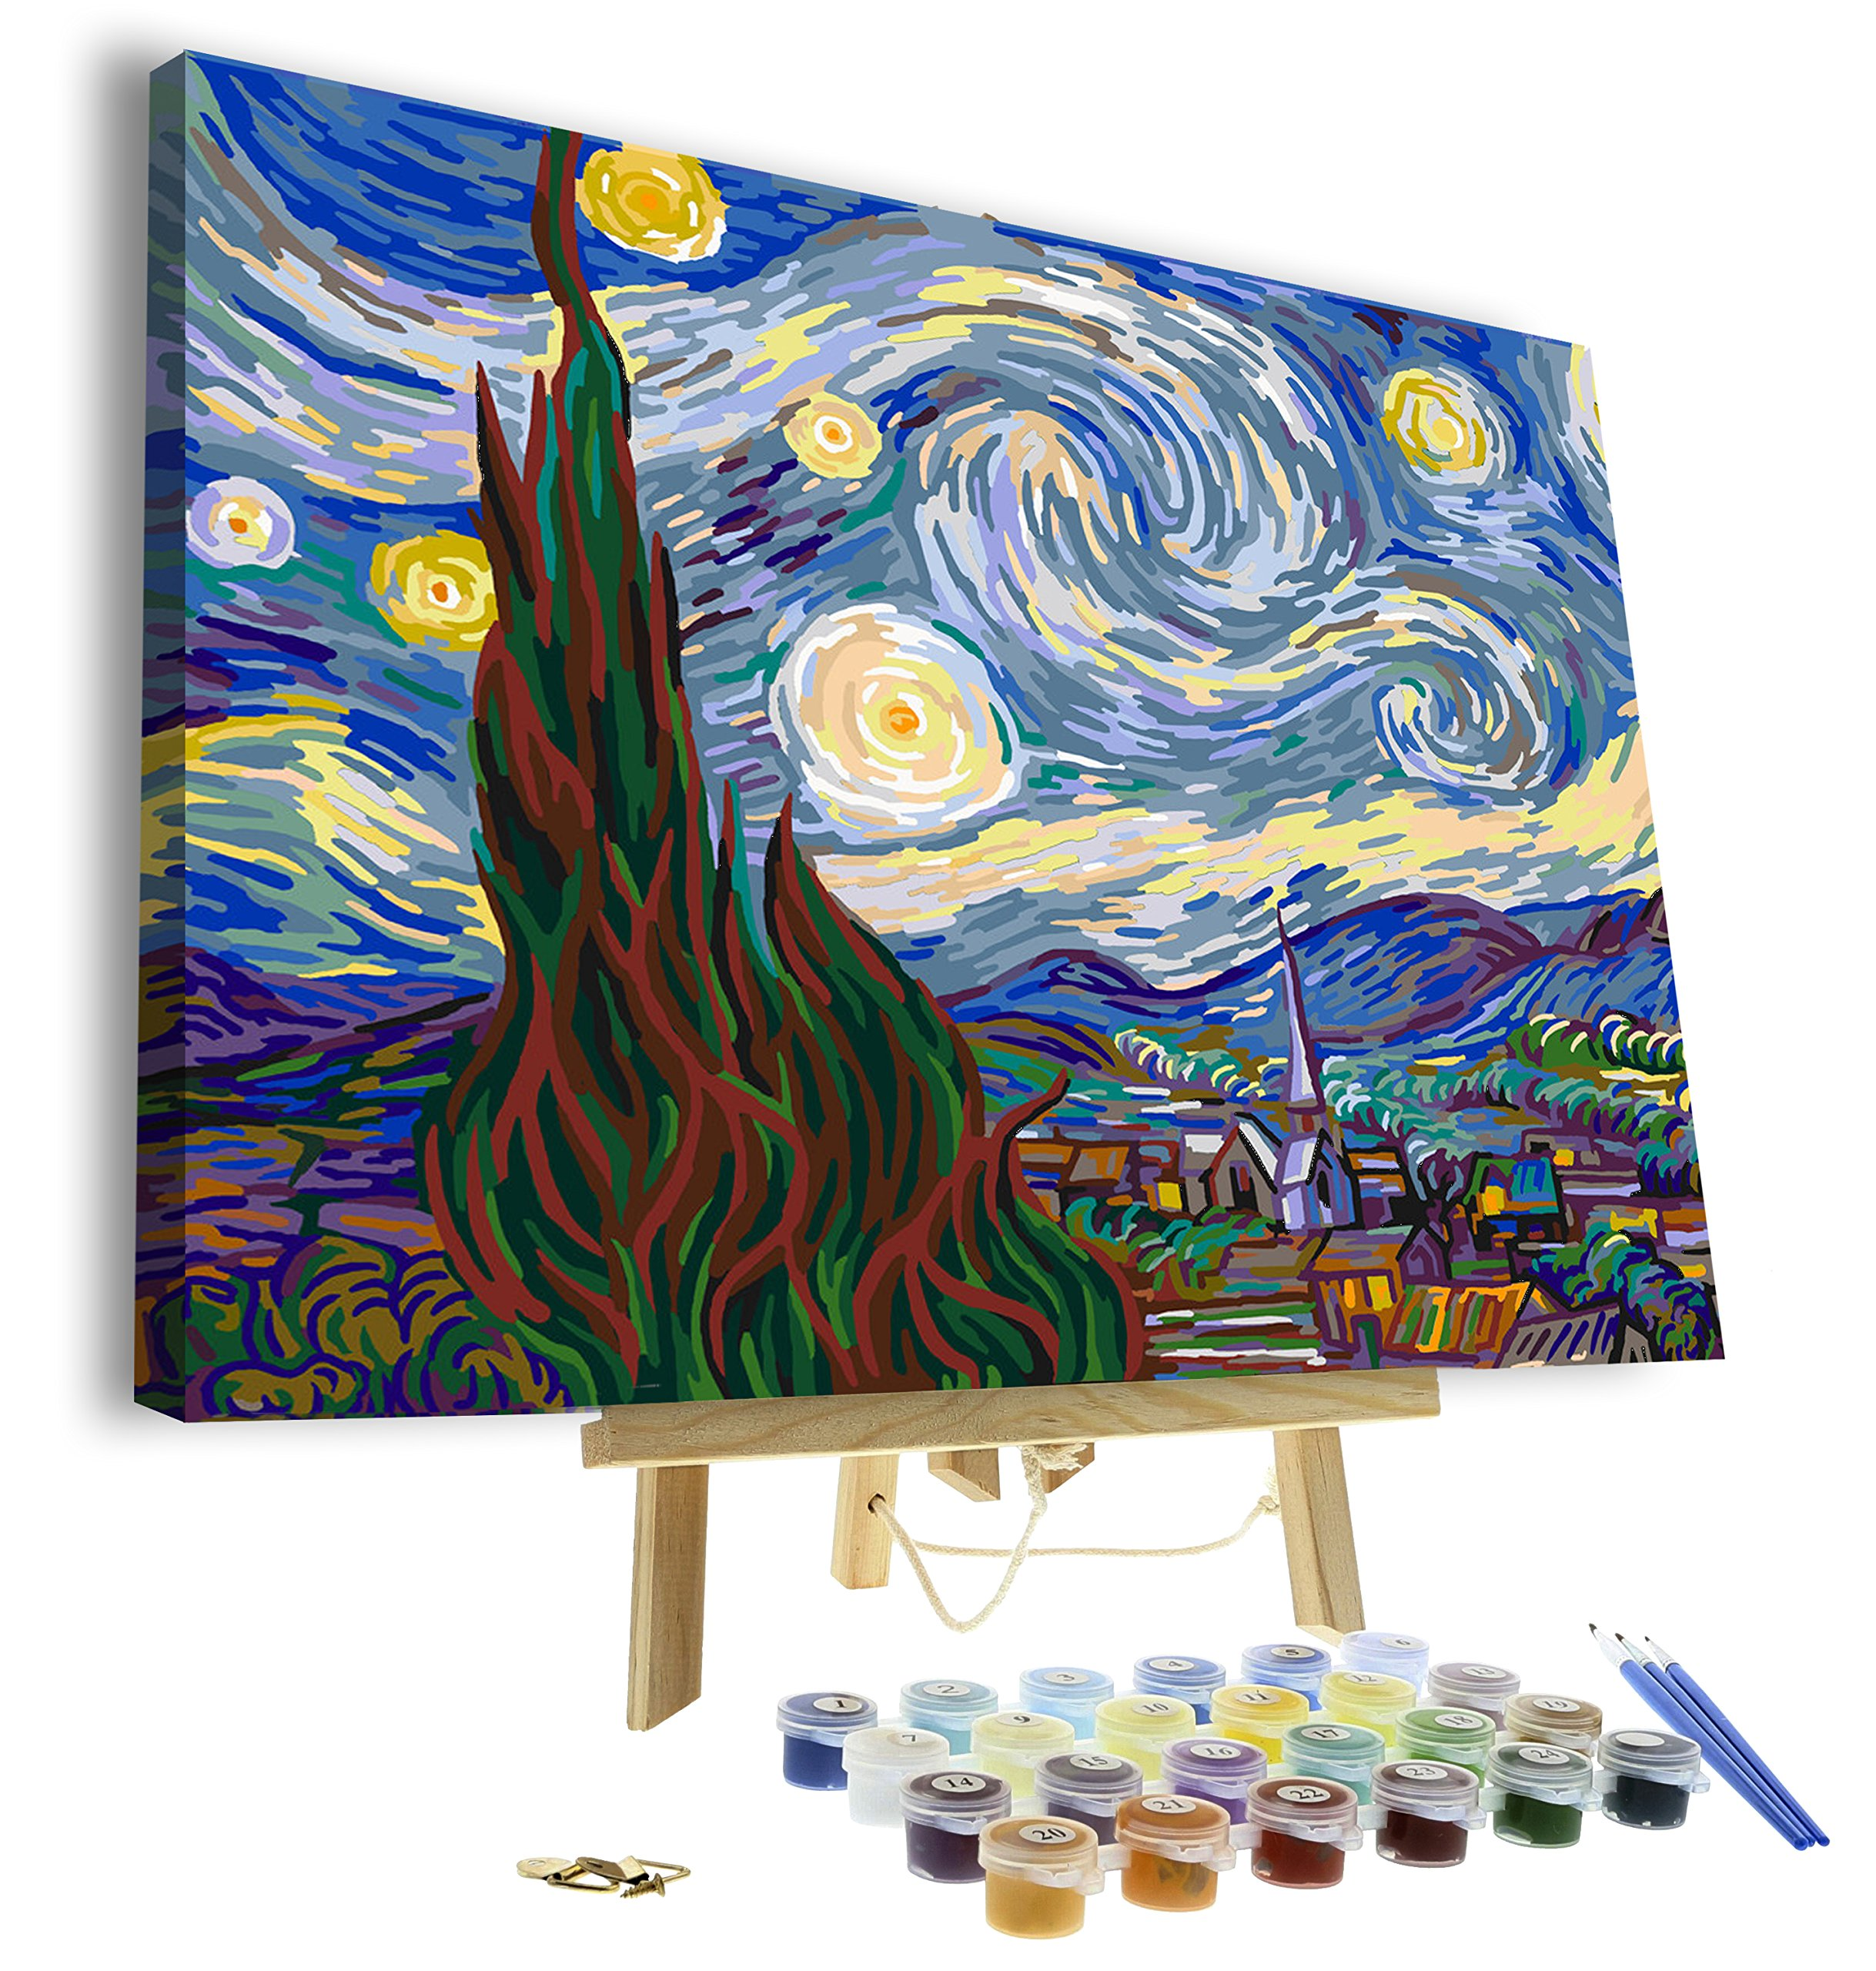 "Paint by Numbers for Adults with Framed Canvas and Wooden Easel Stand - DIY Full Set of Assorted Color Oil Painting Kit and Brush Accessories - Van Gogh The Starry Night 12""x16 Replica"